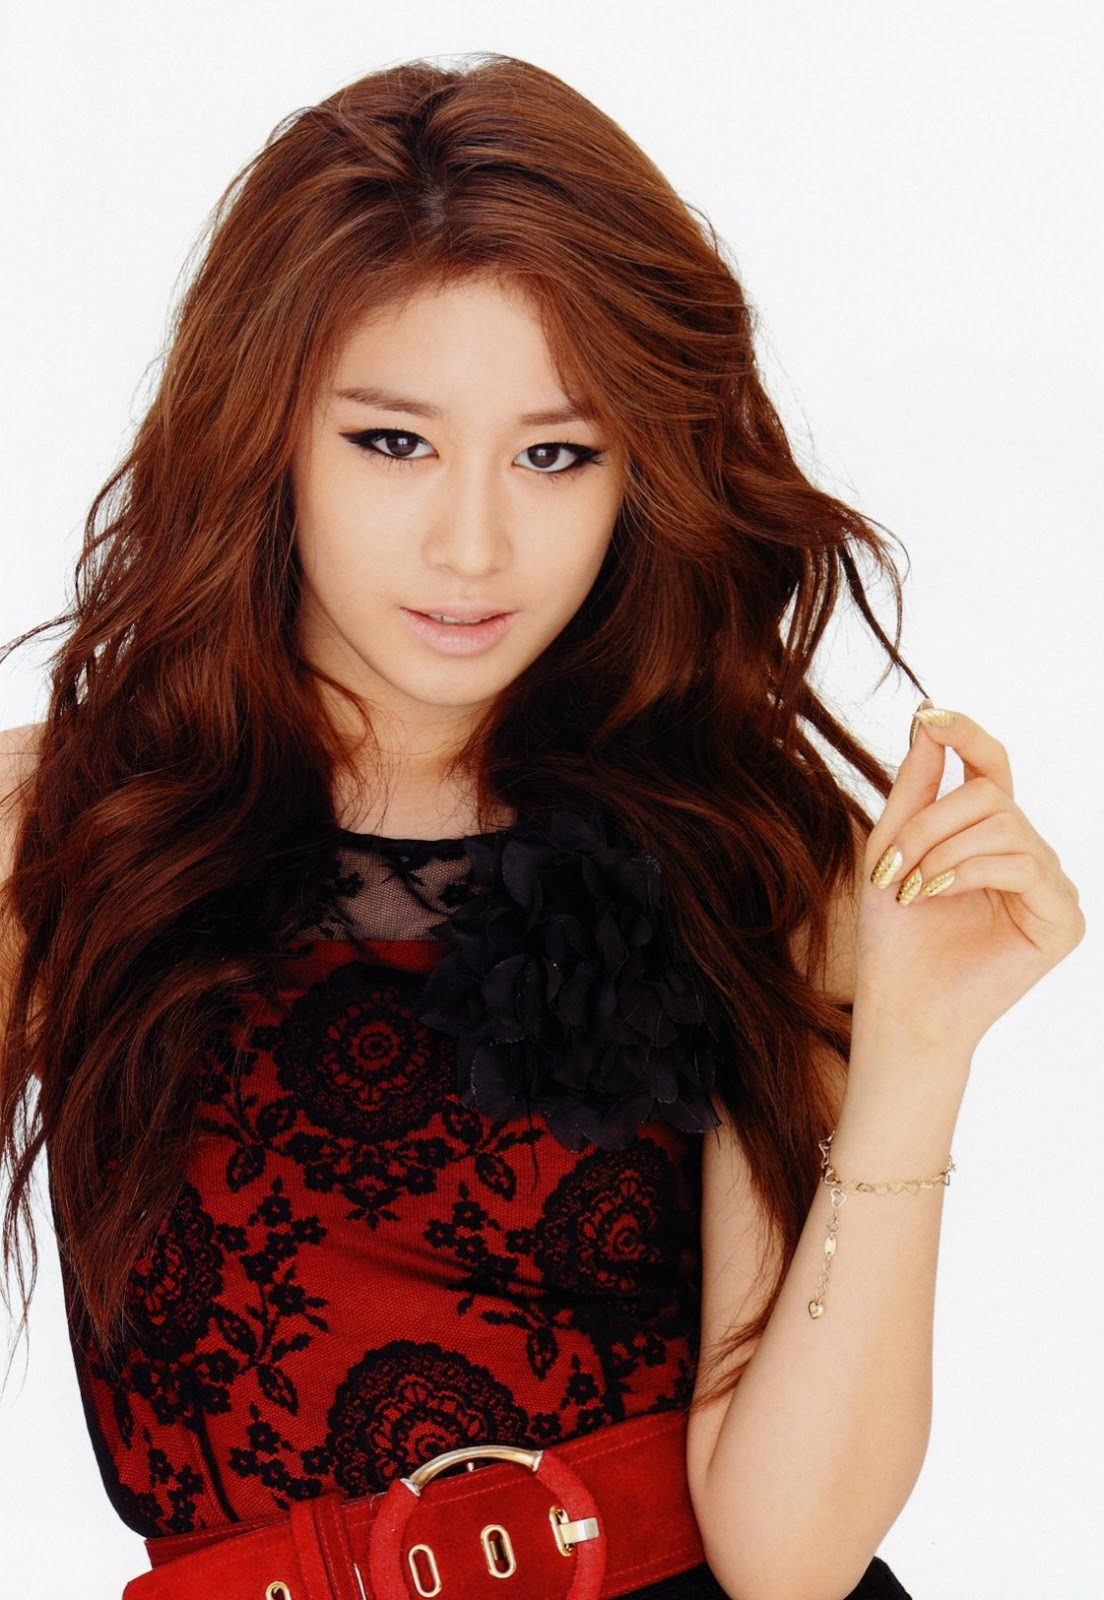 T-ARA: Happy Birthday to T-ara's Park JiYeon!